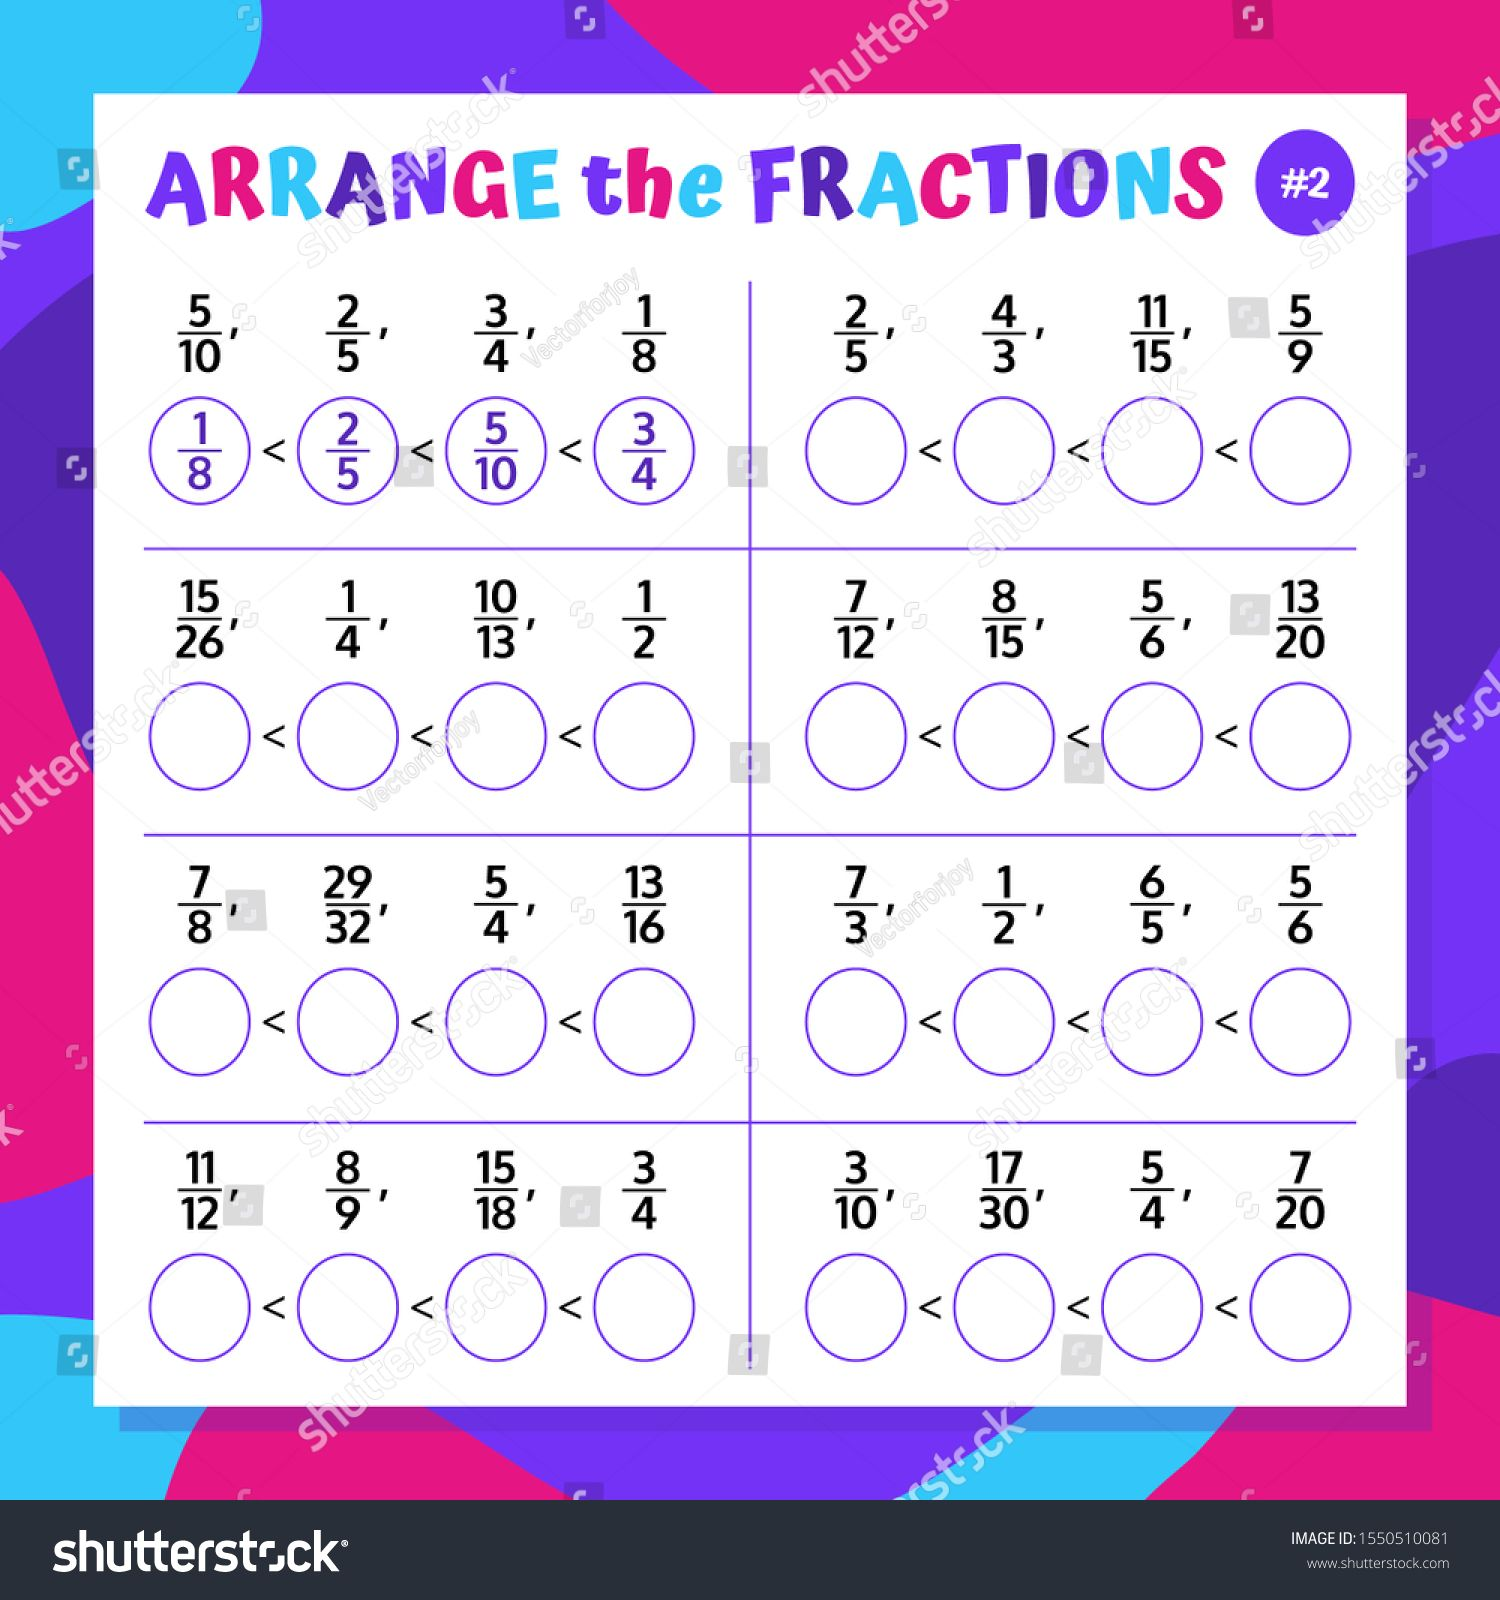 Comparing And Ranging The Fractions Mathematical Worksheet Math Puzzle Educational Game Ad Aff Fractions Mathematical Com Fractions Maths Puzzles Math Adding vectors worksheet answer key